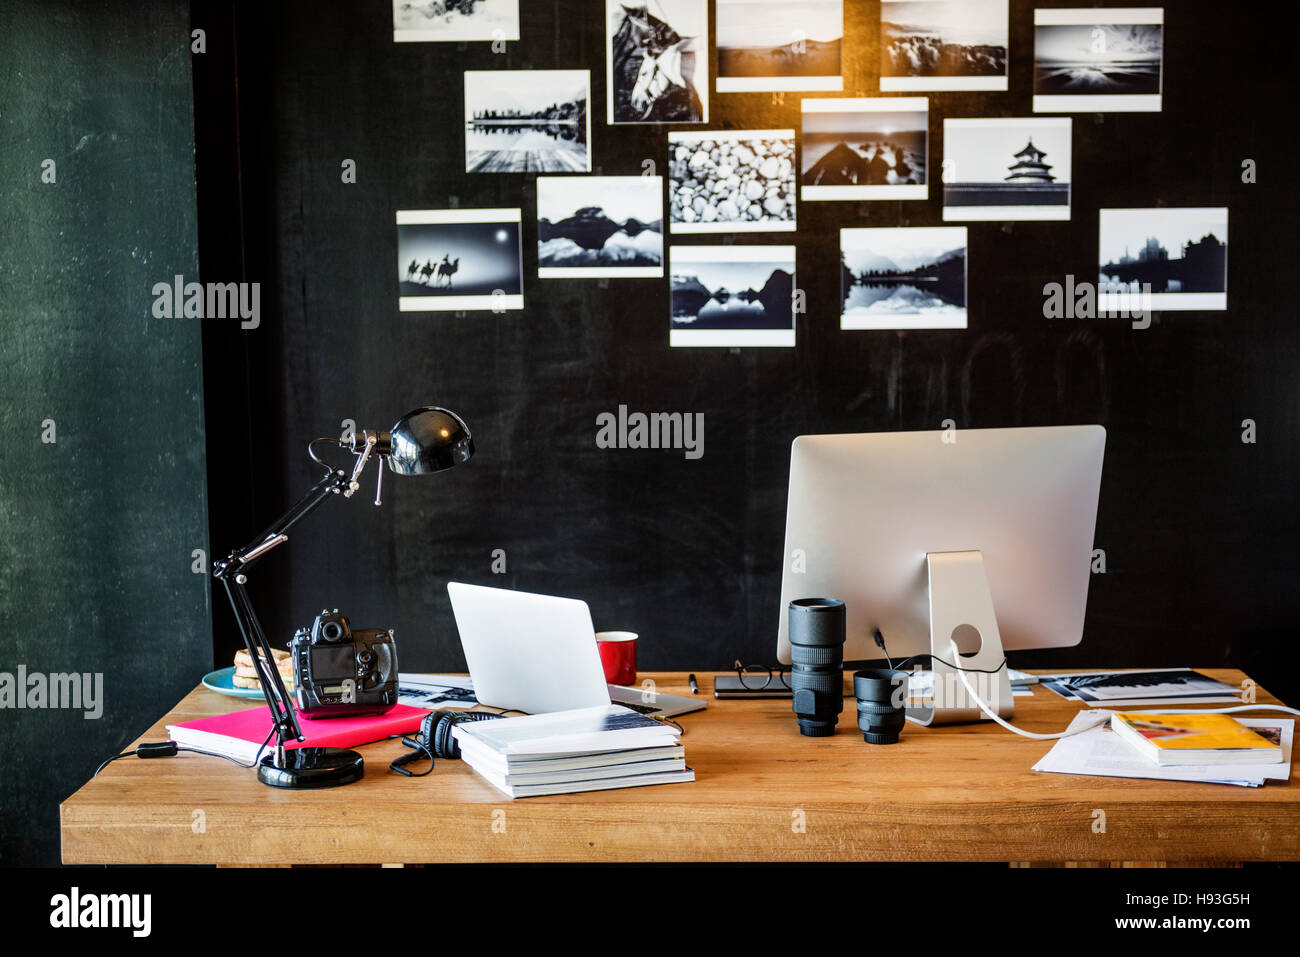 Man Busy Photographer Editing Home Office Concept - Stock Image